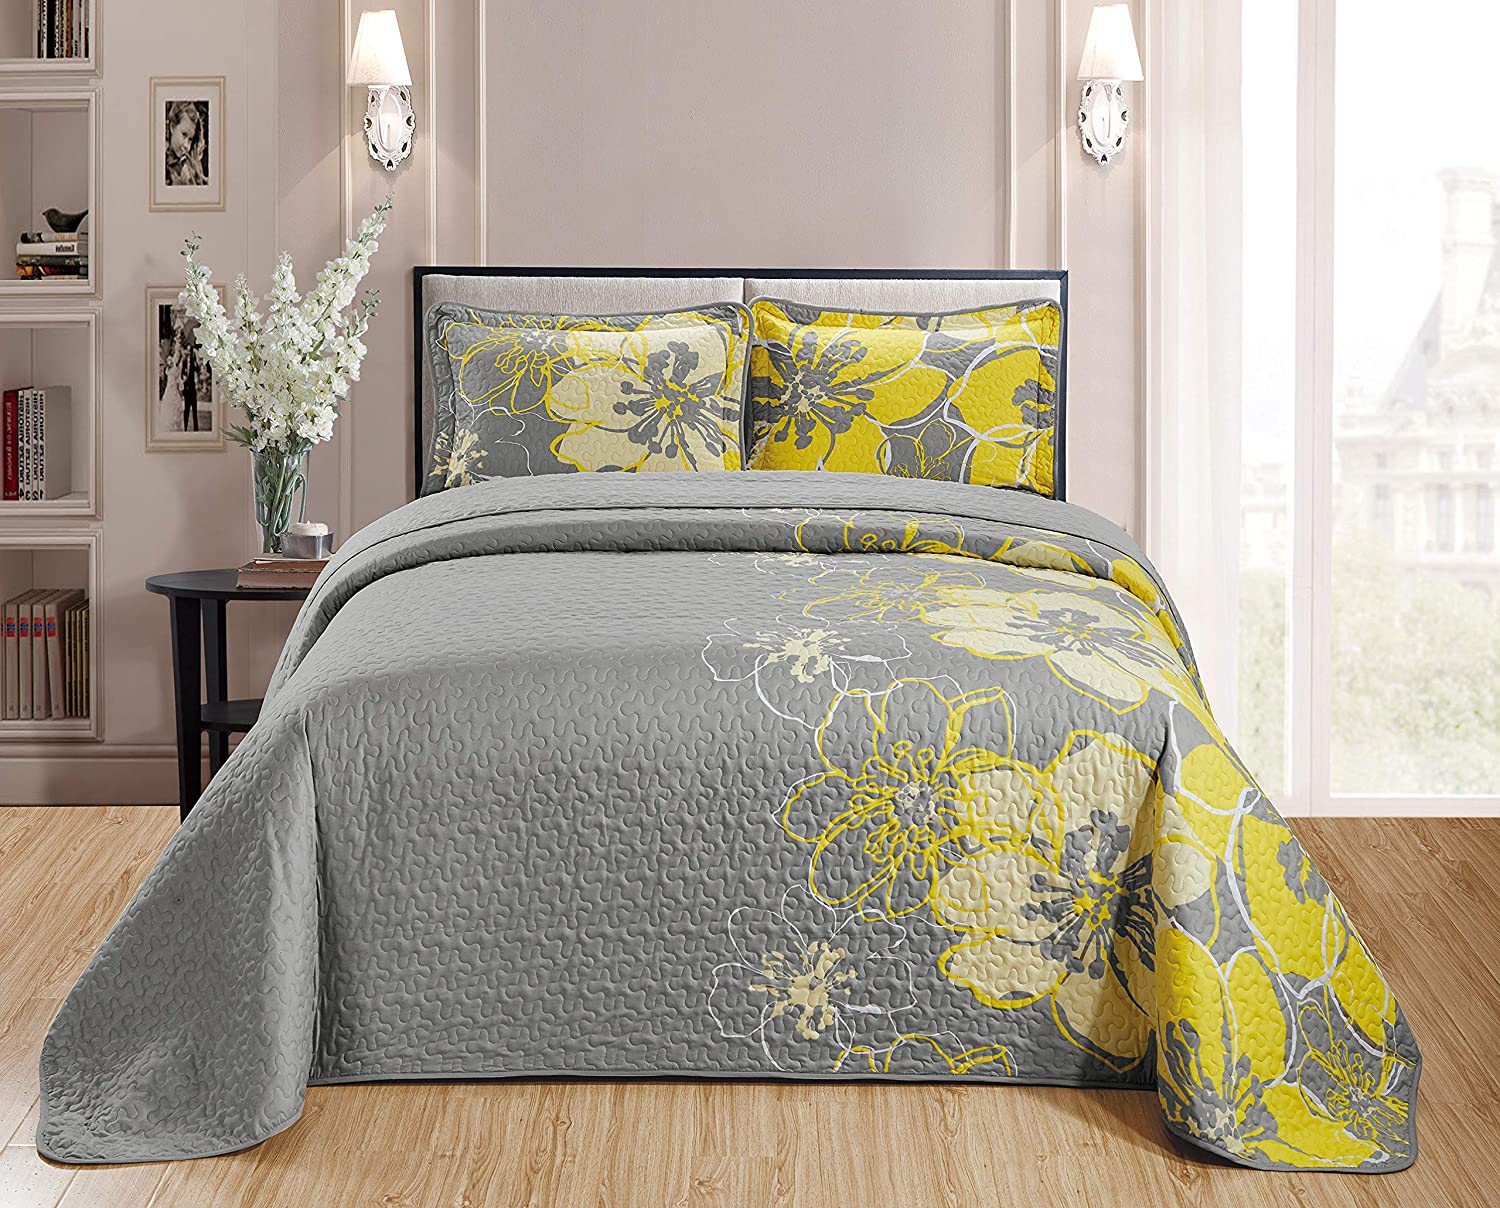 Home Collection Quilt Bedspread Set Over Size Flowers Printed Grey Yellow King/California King New